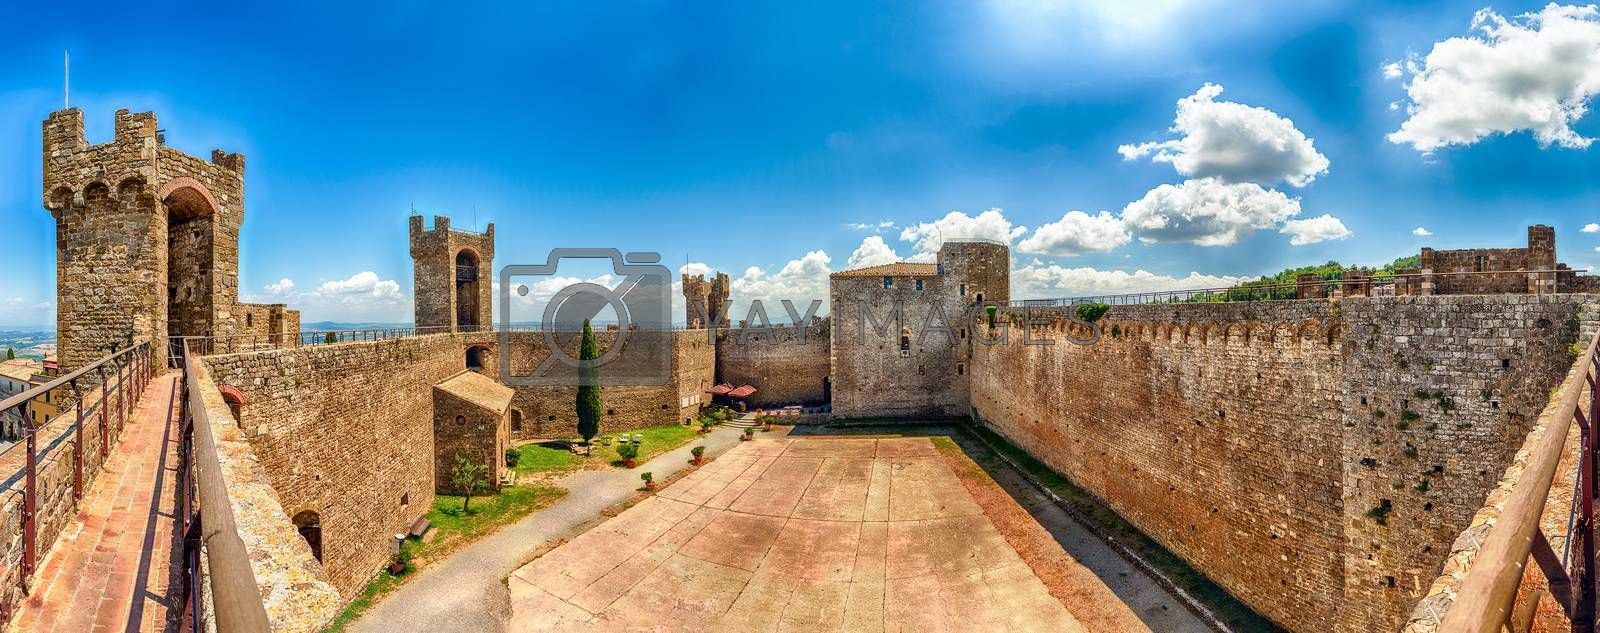 Interior panoramic view of a medieval italian fortress, iconic landmark and one of the most visited sightseeing in Montalcino, Tuscany, Italy